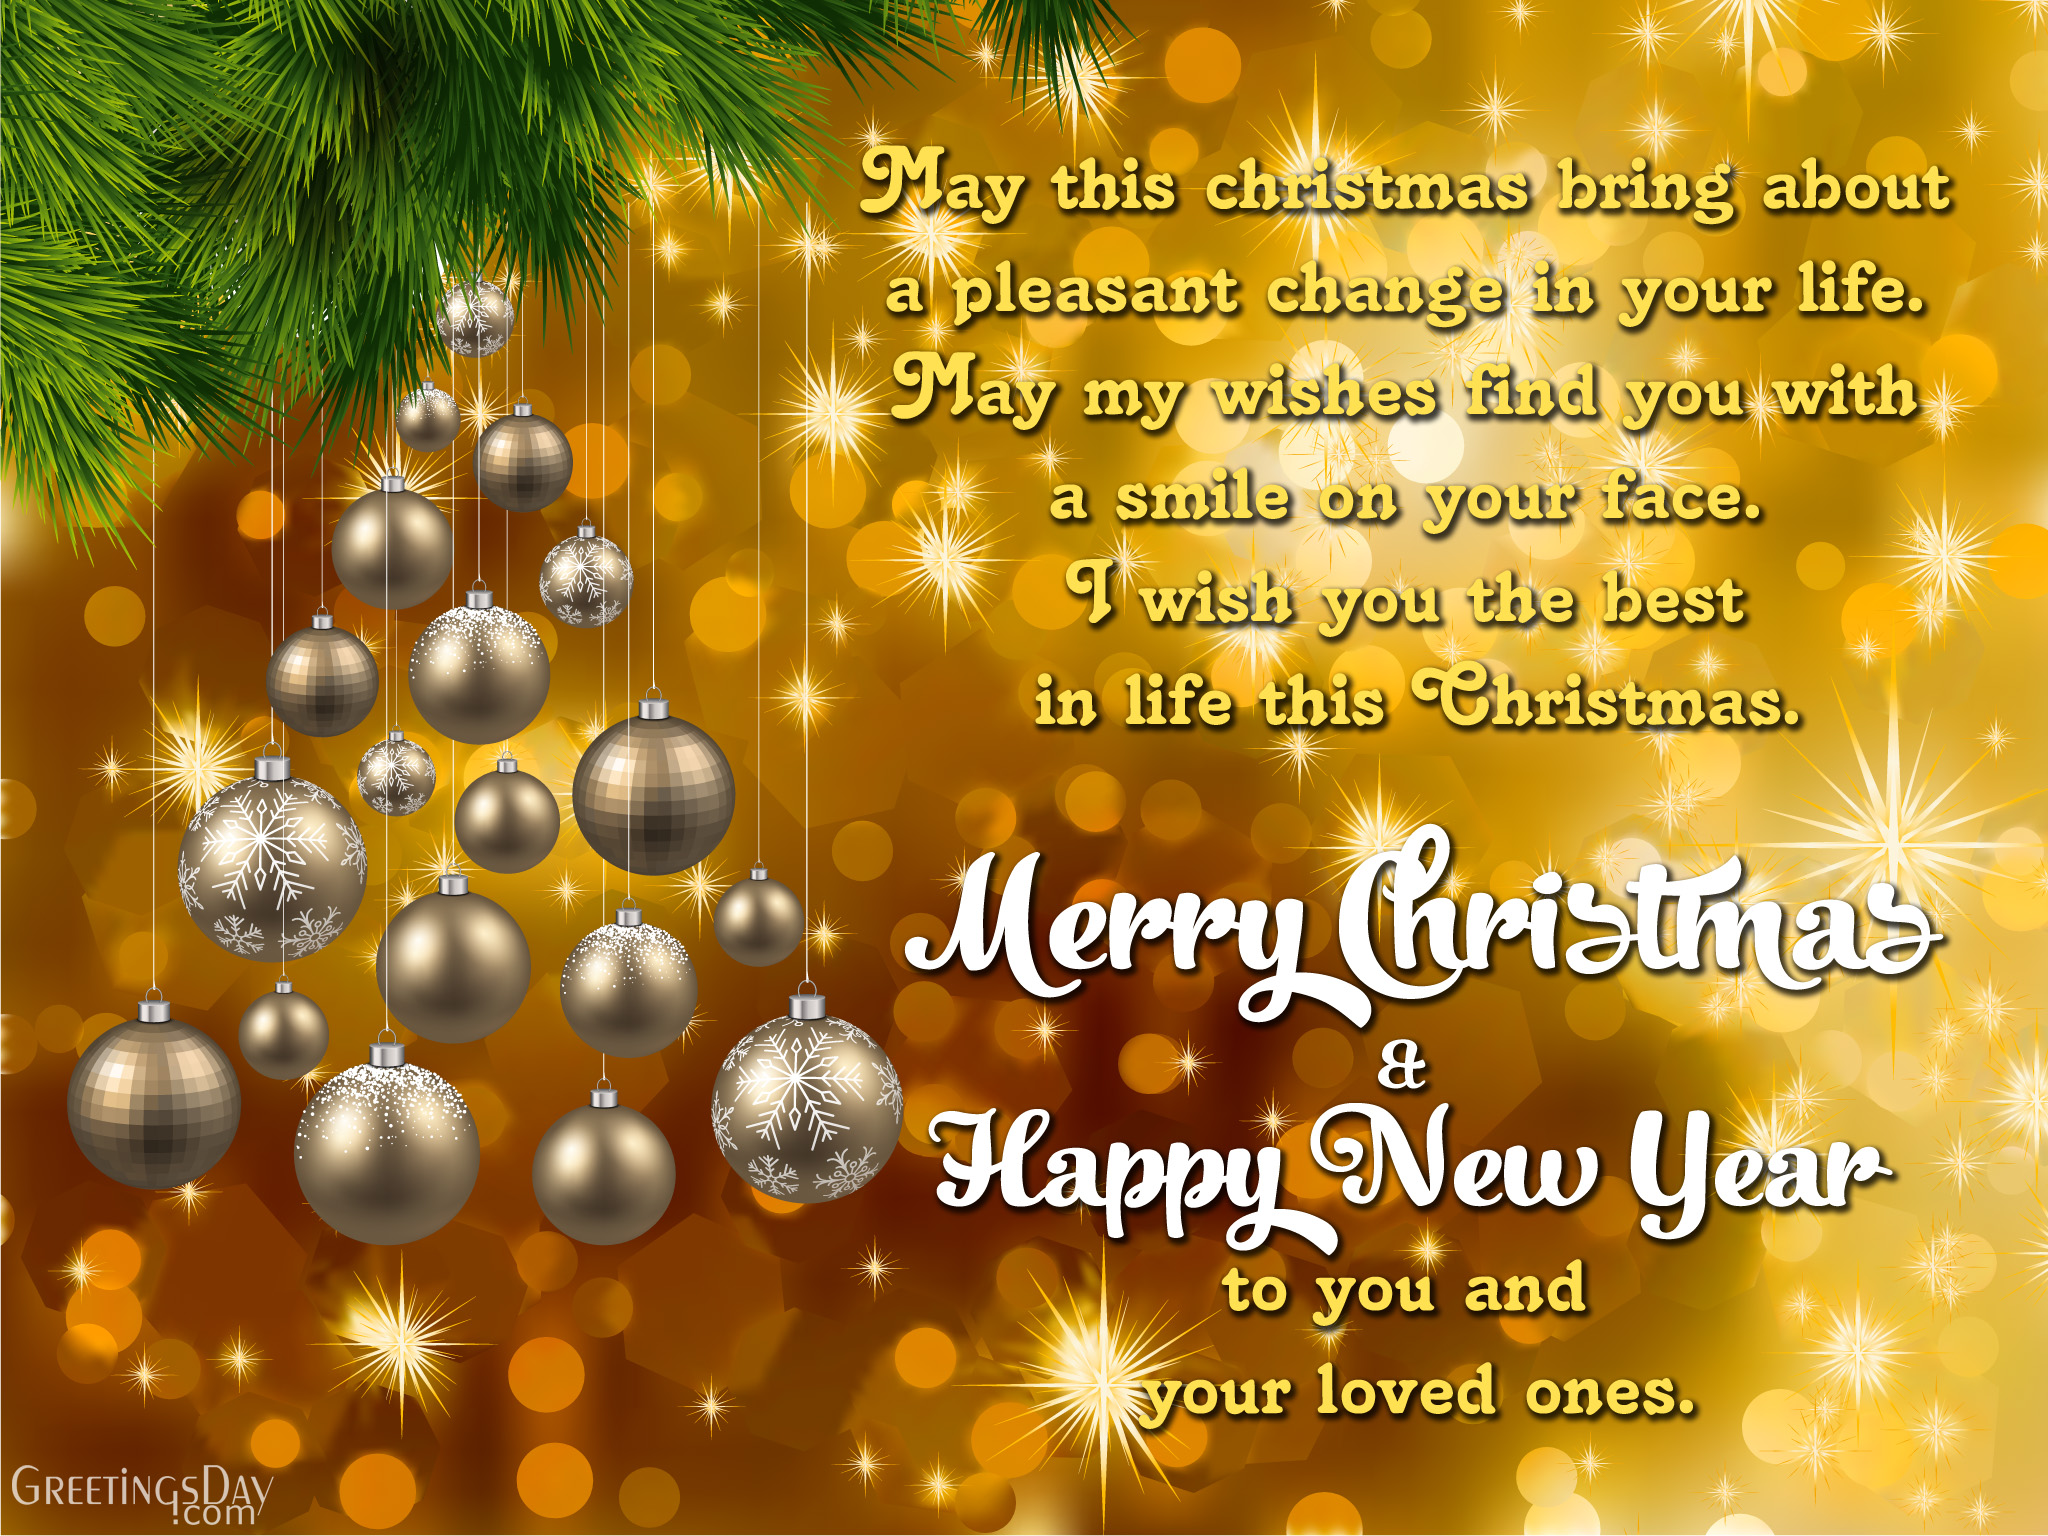 Download new year greetings for husband unemployment bullies download new year greetings for husband kristyandbryce Choice Image